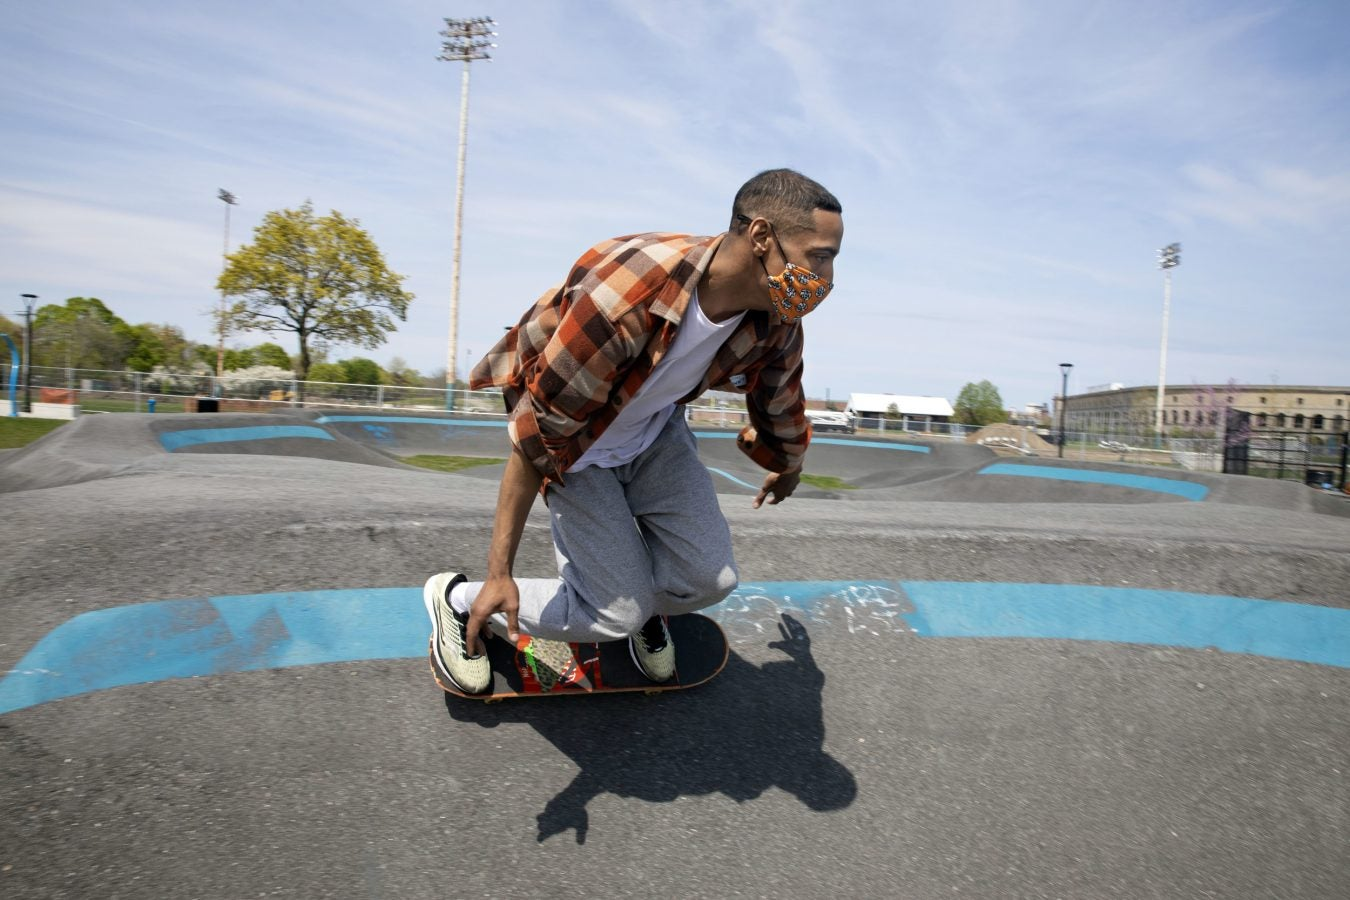 At the Smith Field in Allston, Will Newson, takes a relaxing ride around the pump track at the public skatepark.